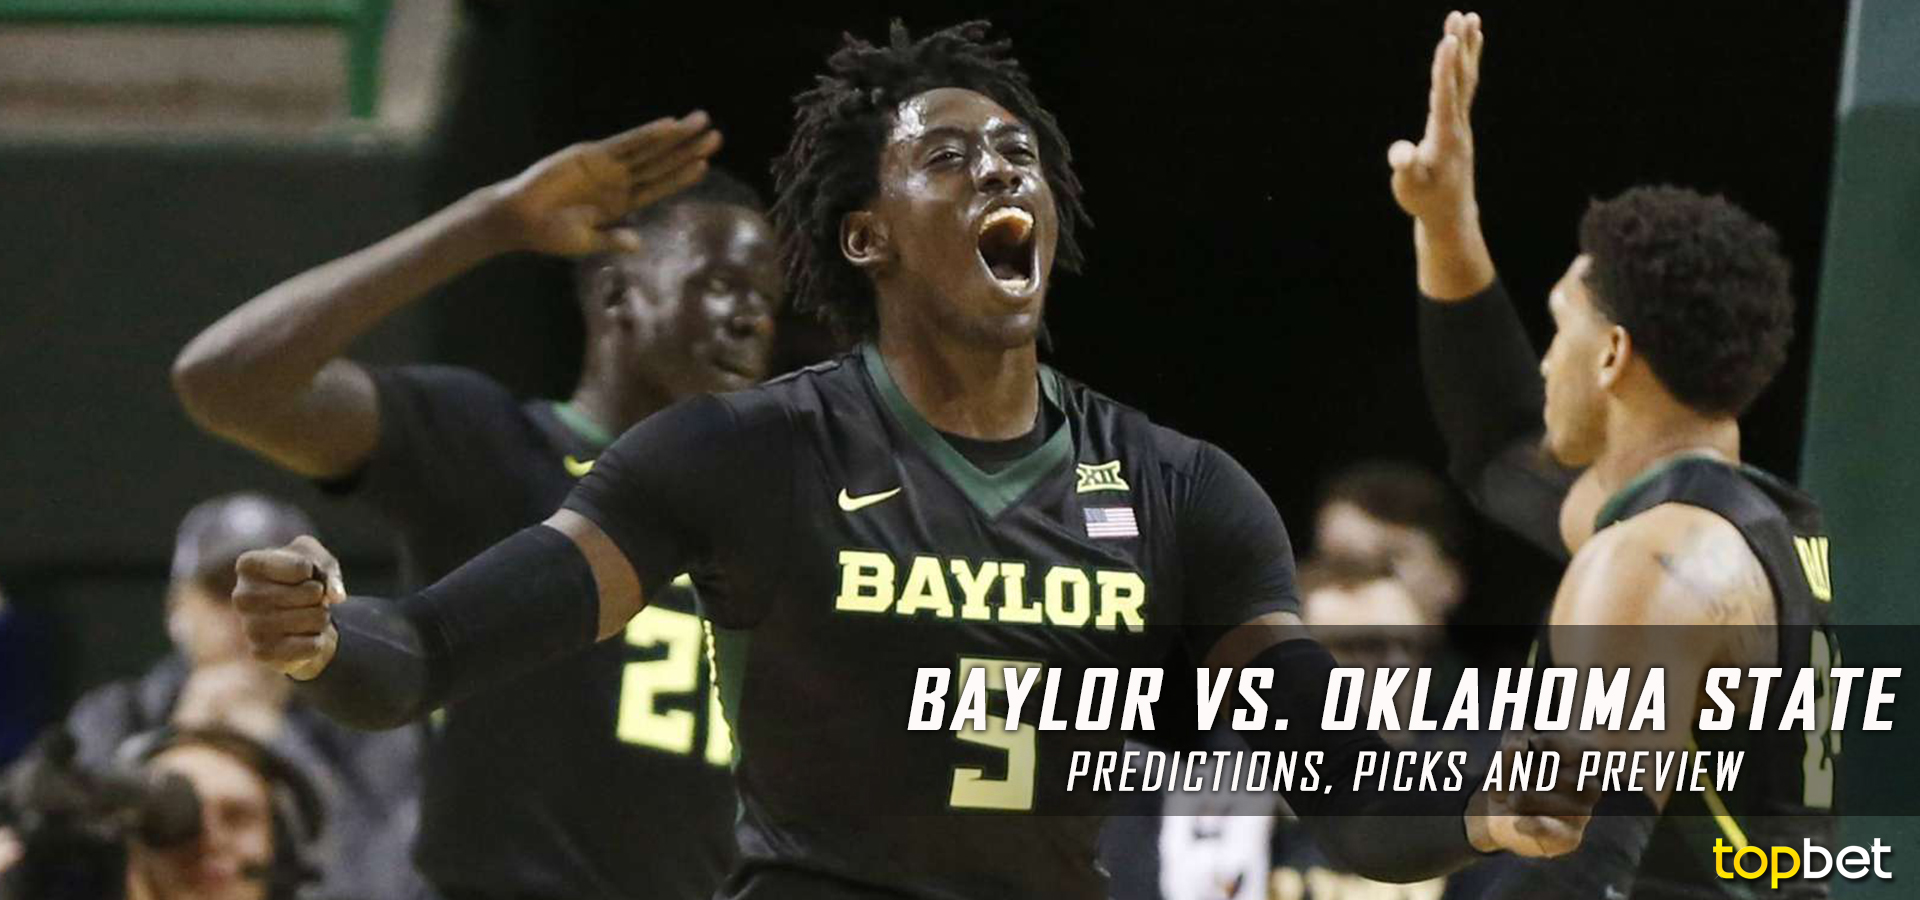 Baylor Vs Syracuse Betting Odds Preview: Baylor Vs Oklahoma State Basketball Predictions And Preview